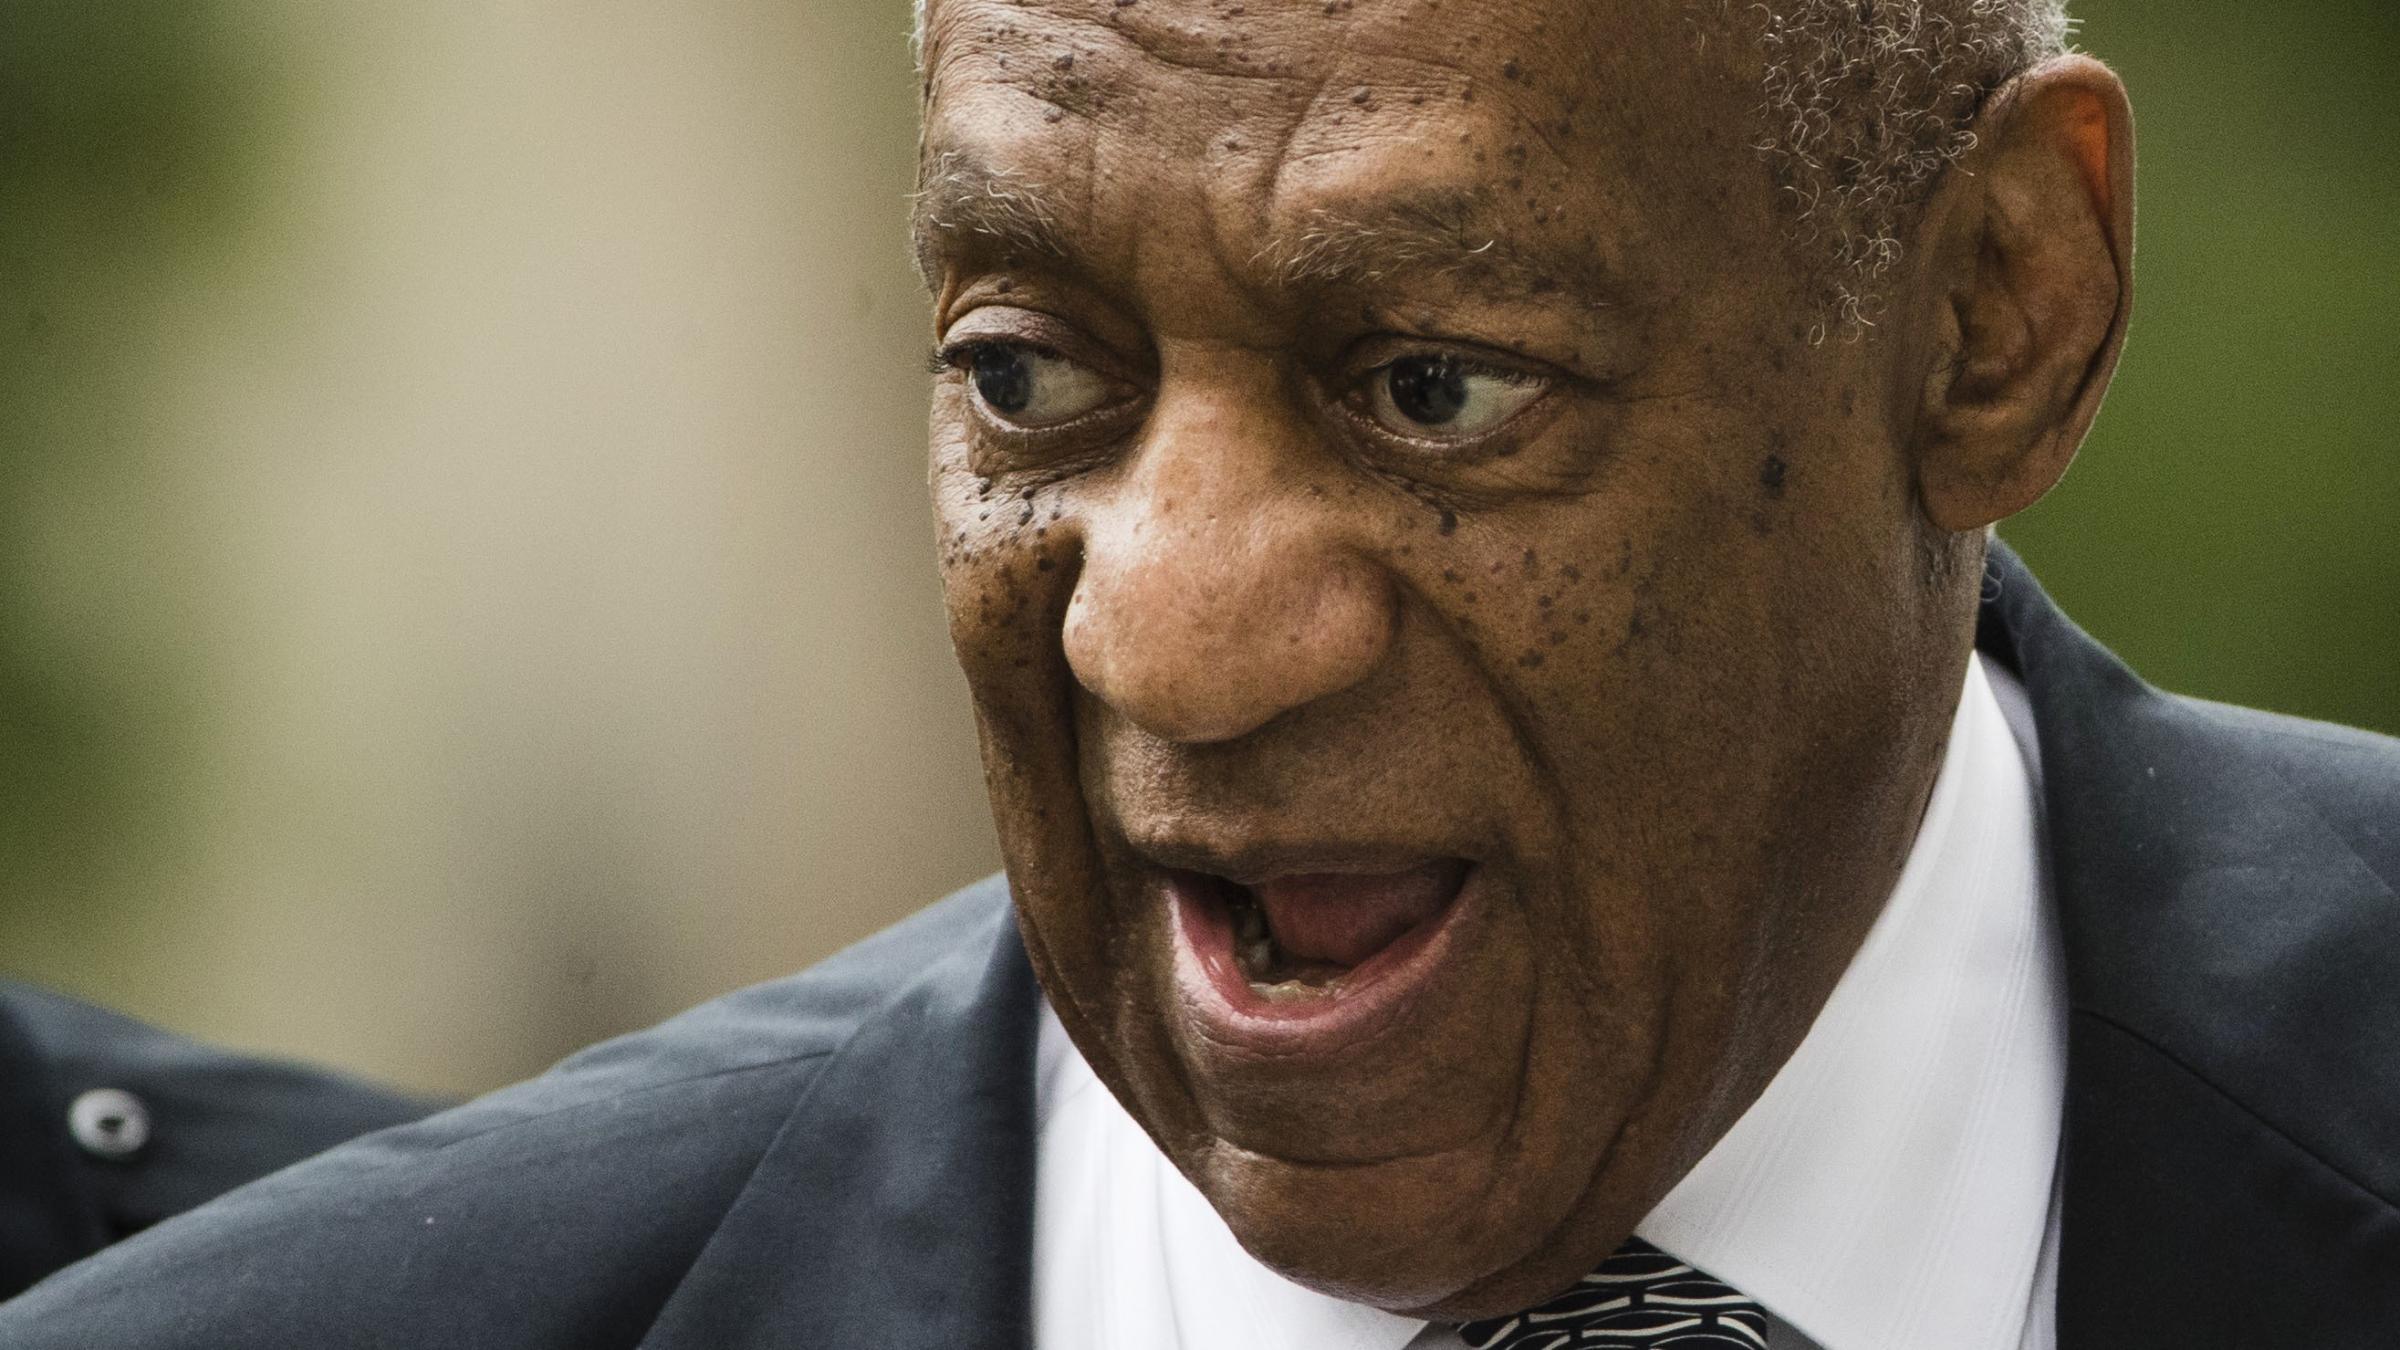 Cosby jurors seek clarification on definition of 'reasonable doubt'